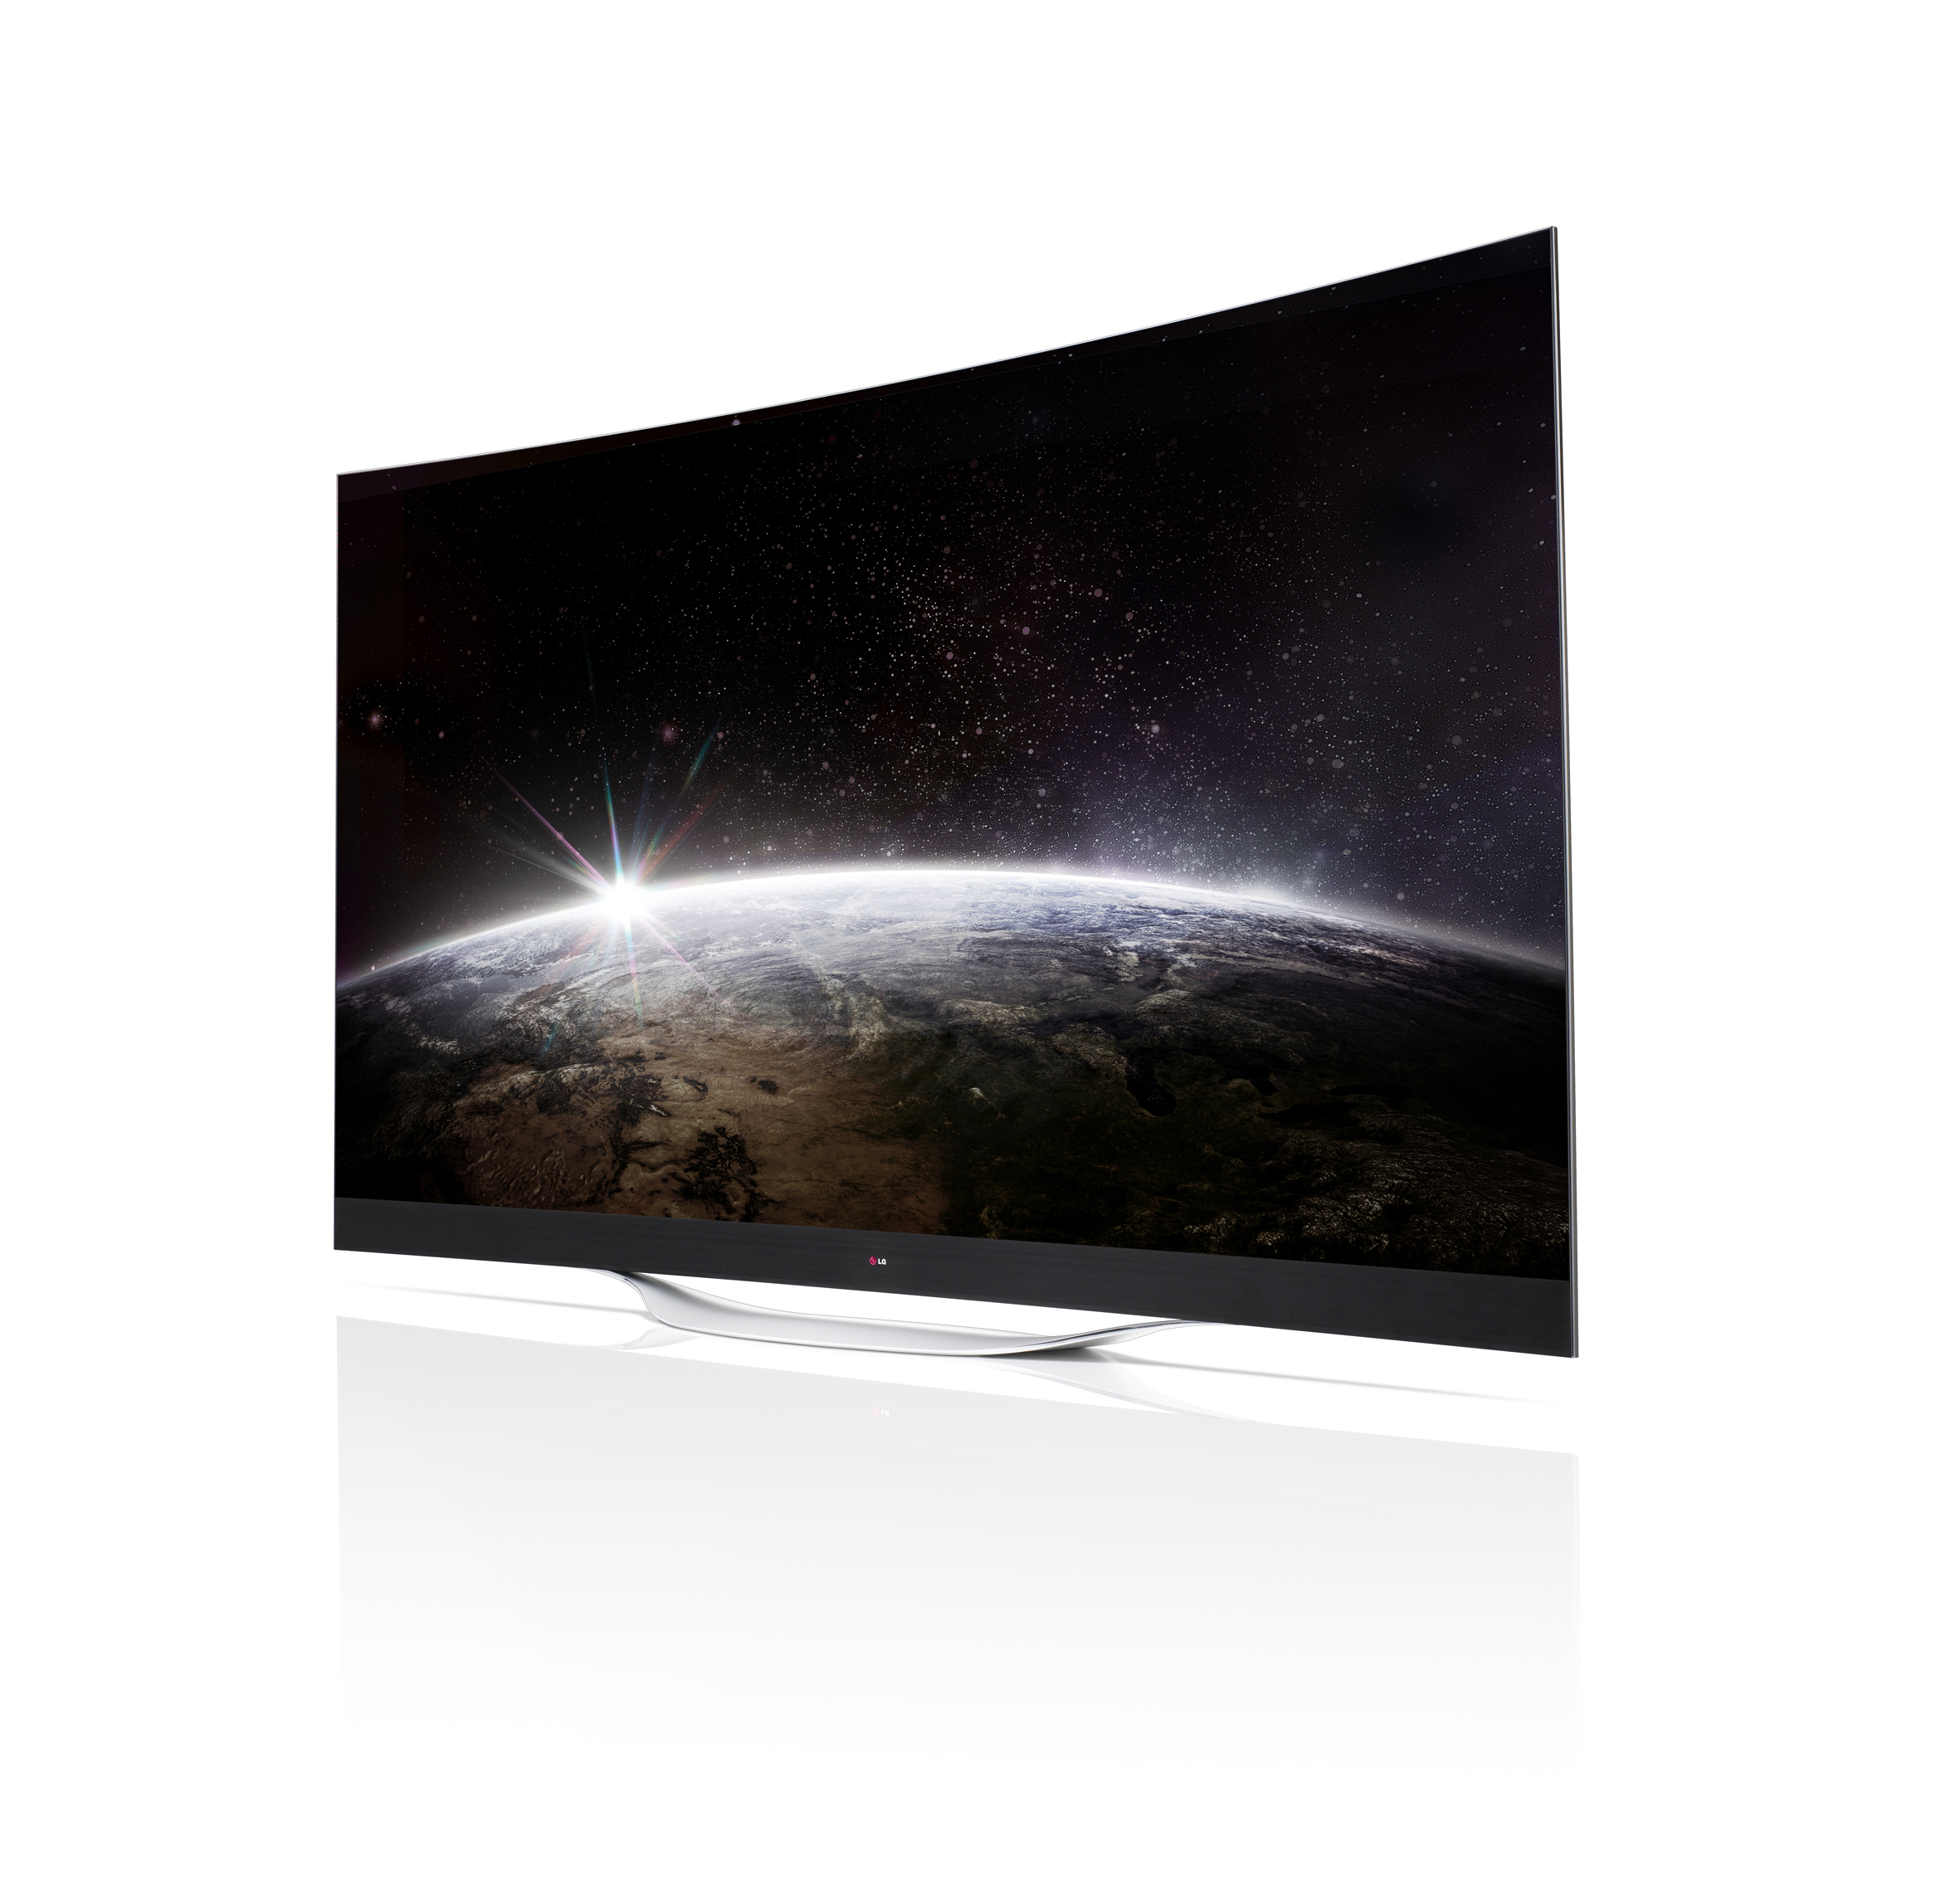 A right-side view of LG's 77-inch 4K OLED TV